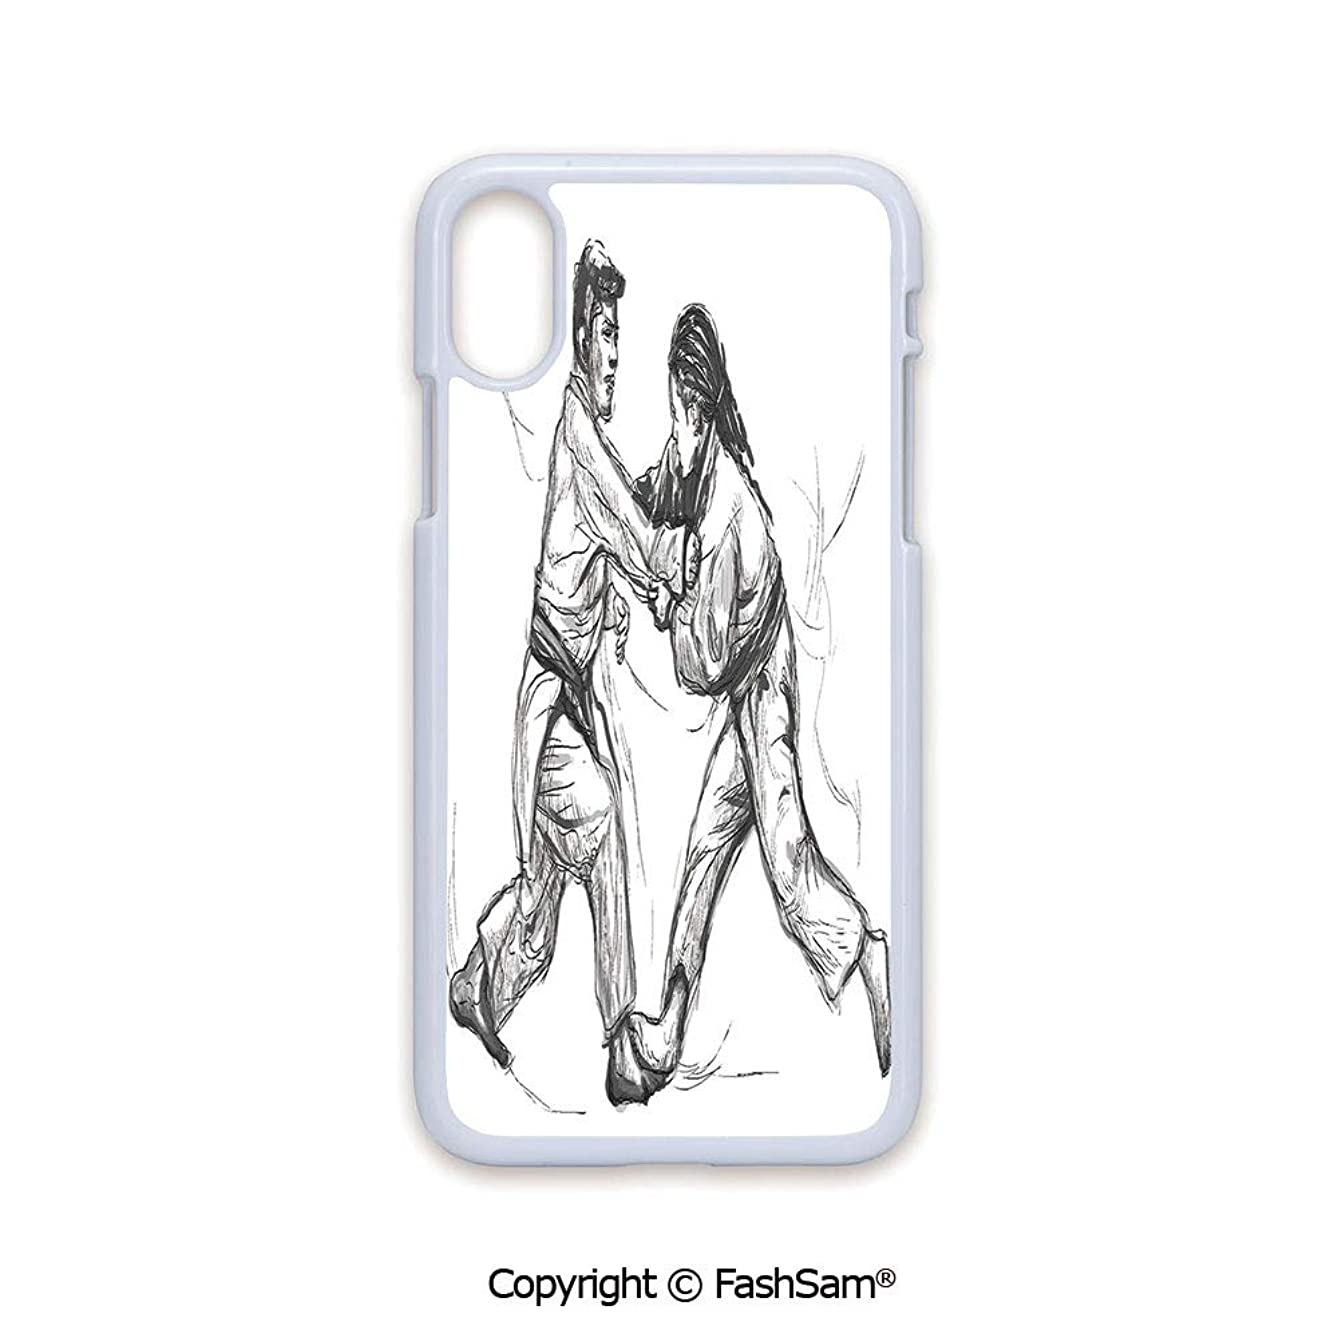 Plastic Rigid Mobile Phone case Compatible with iPhone X Black Edge Karate Eastern Martial Arts Fighting Men Combat Traditional Hand Drawn Print 2D Print Hard Plastic Phone Case